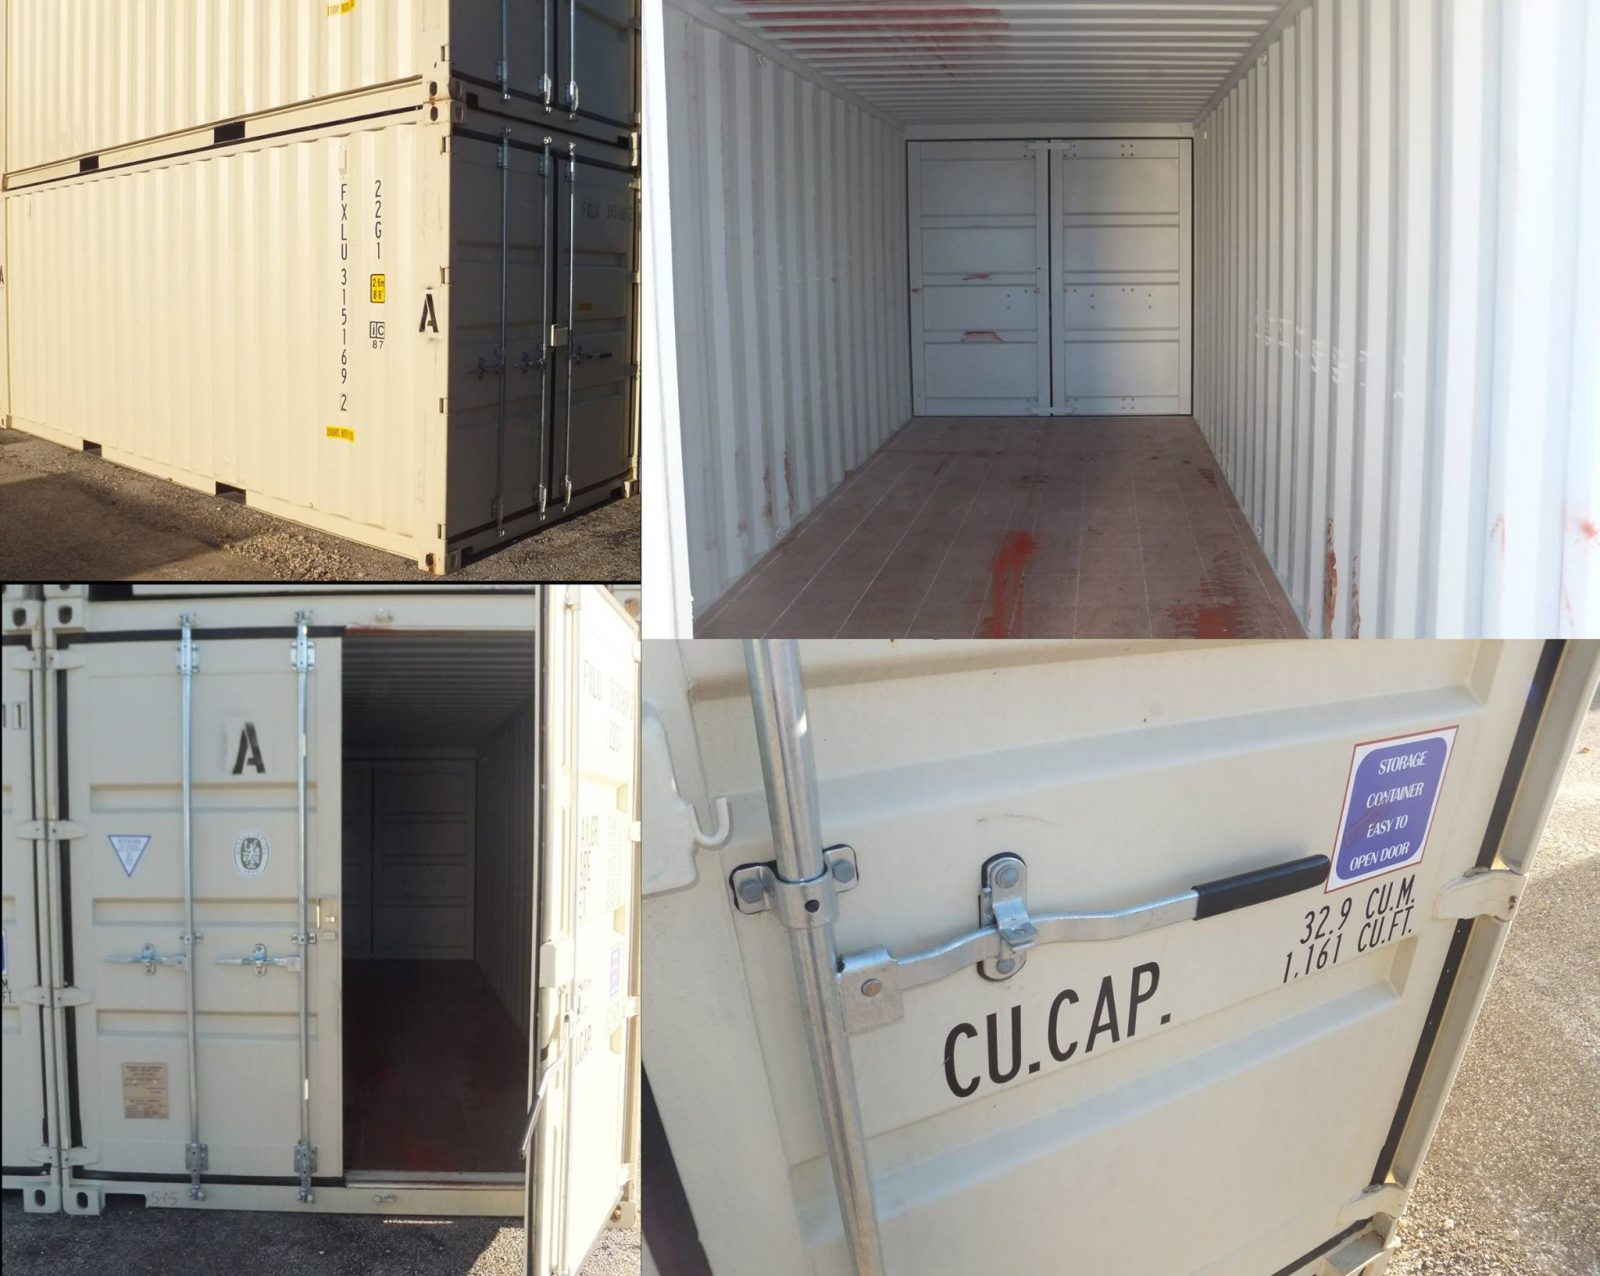 Our storage units are weather resistant and designed to be a safe simple ground level solution for your storage requirements